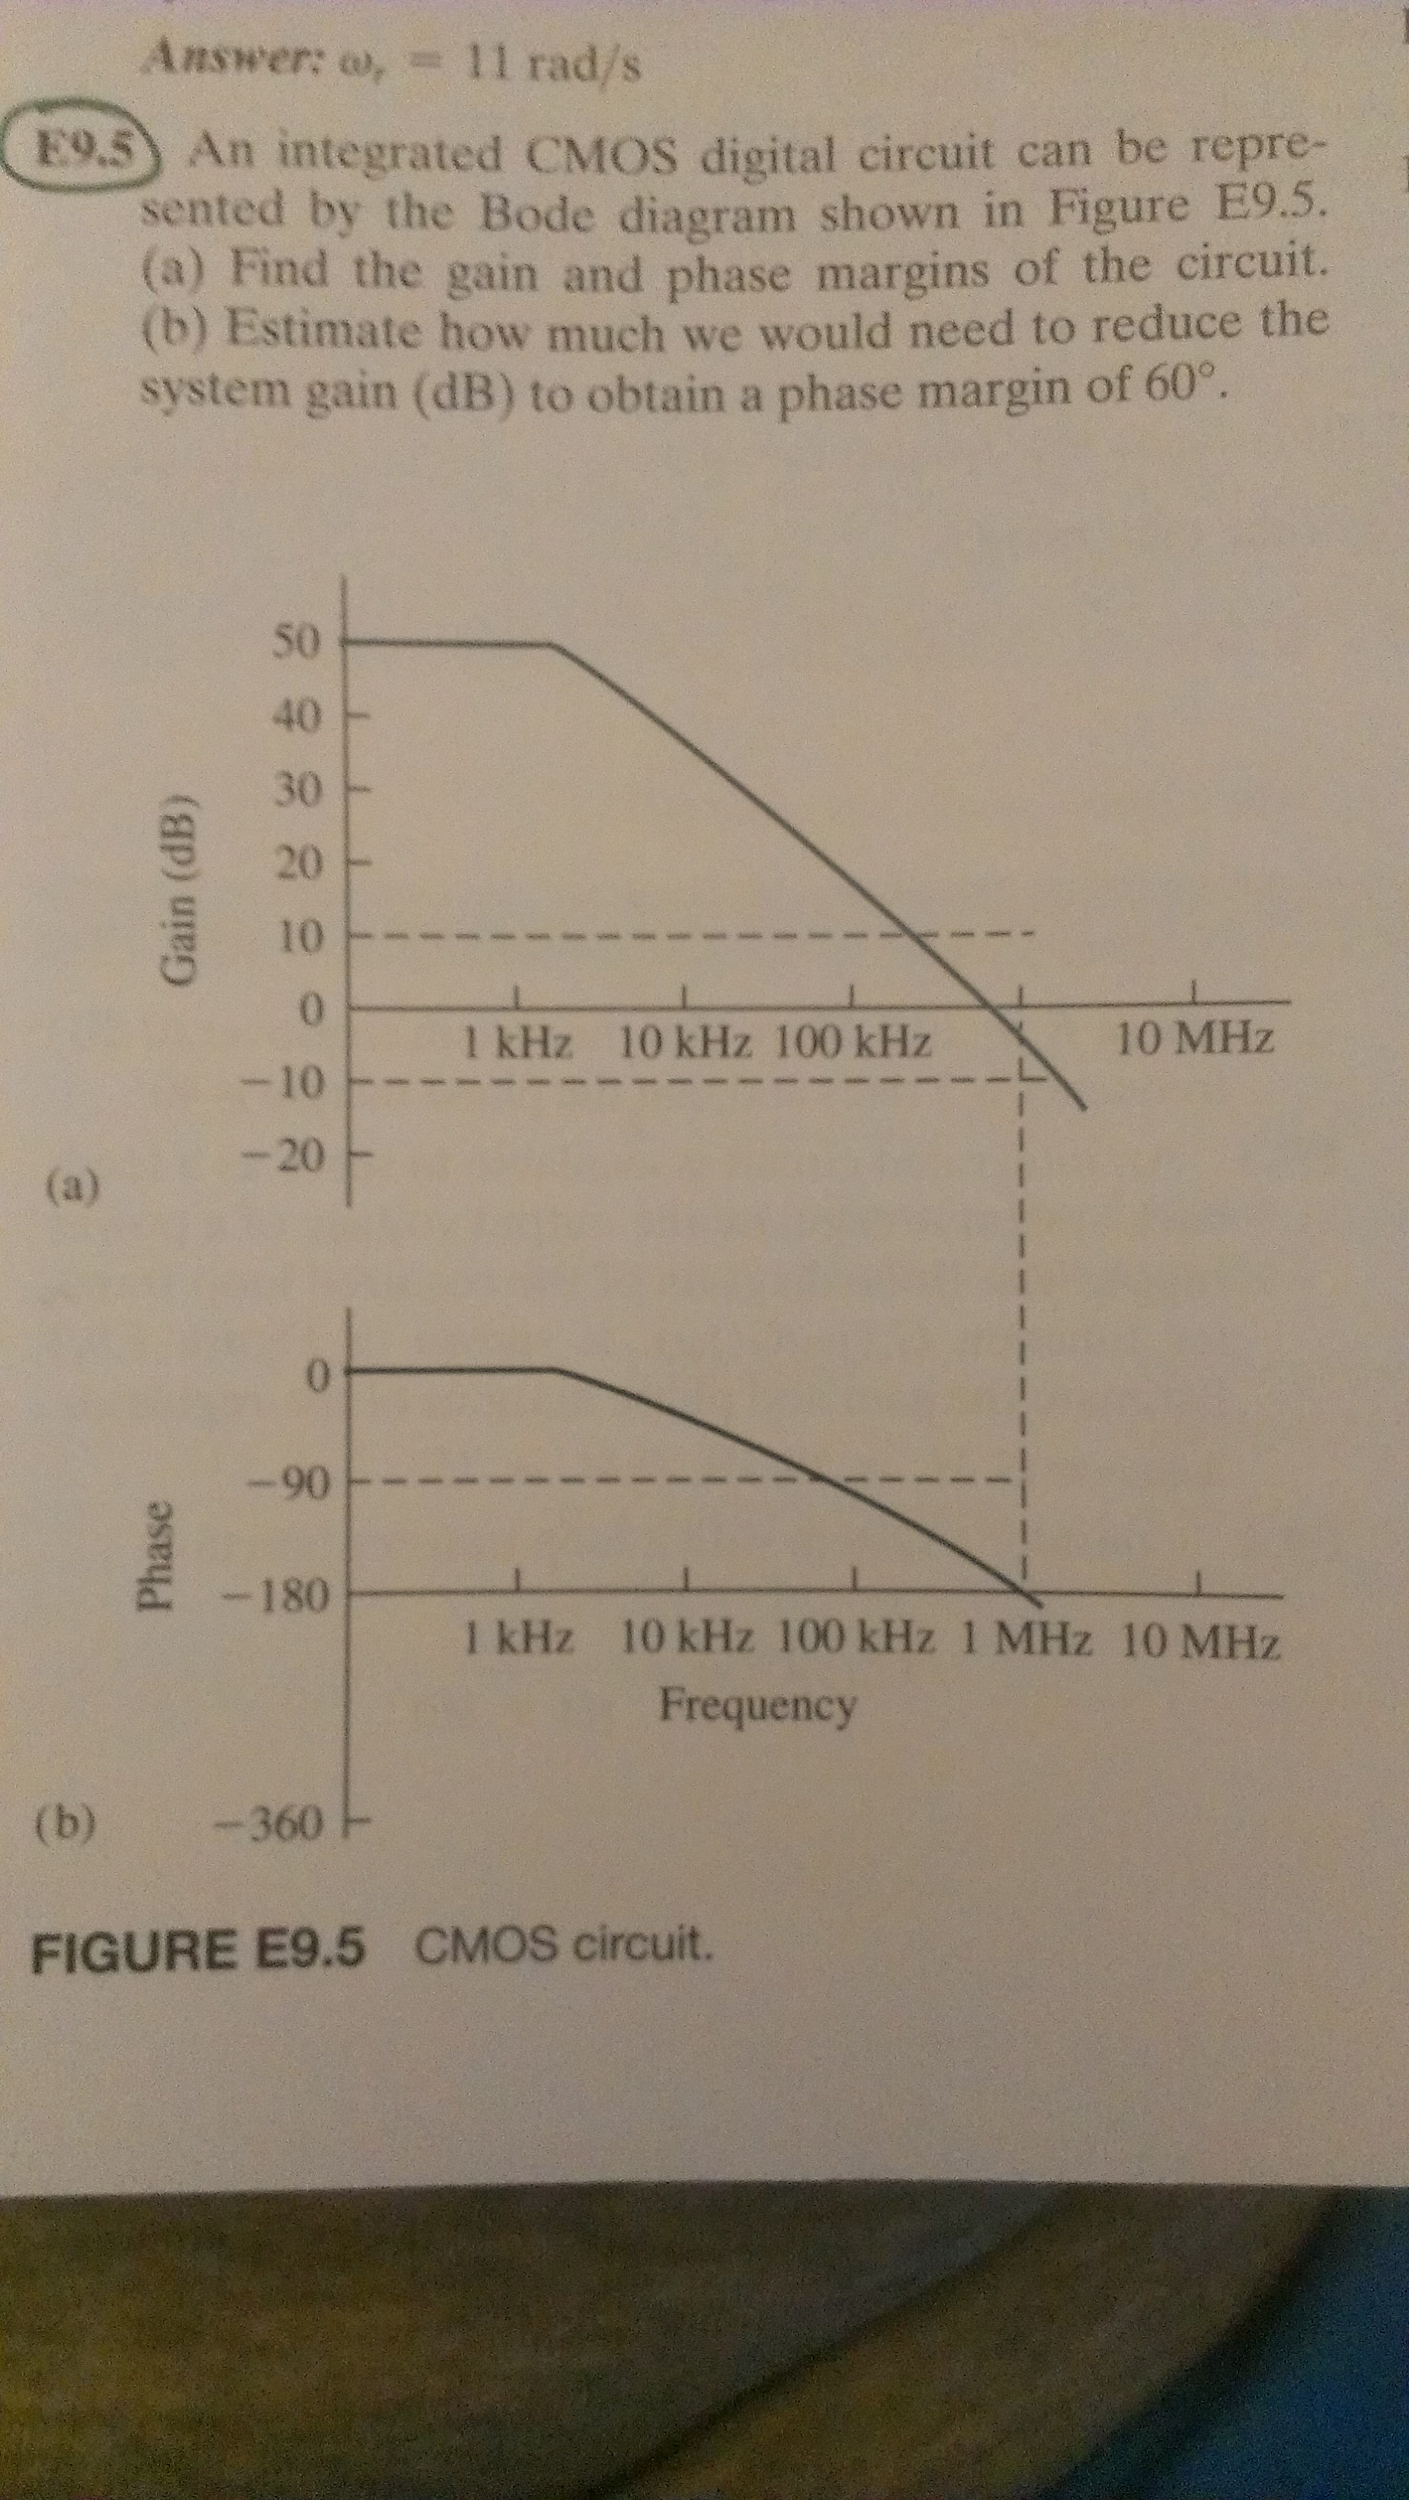 Answer : omega r = 11 rad / s An integrated CMOS